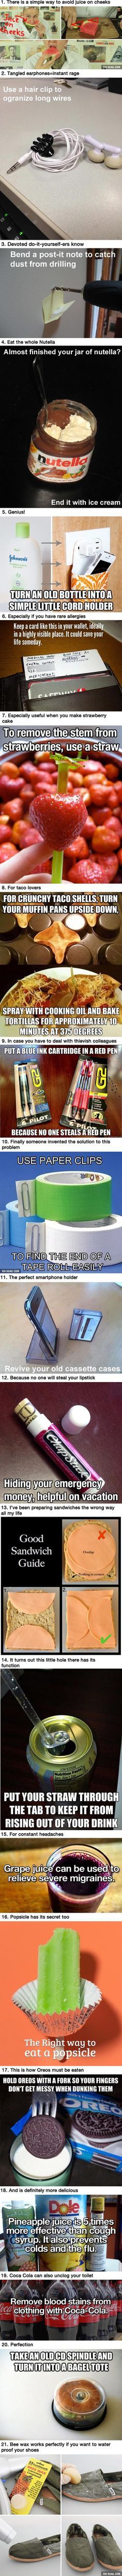 21 Life Hacks That Are Nice To Know!